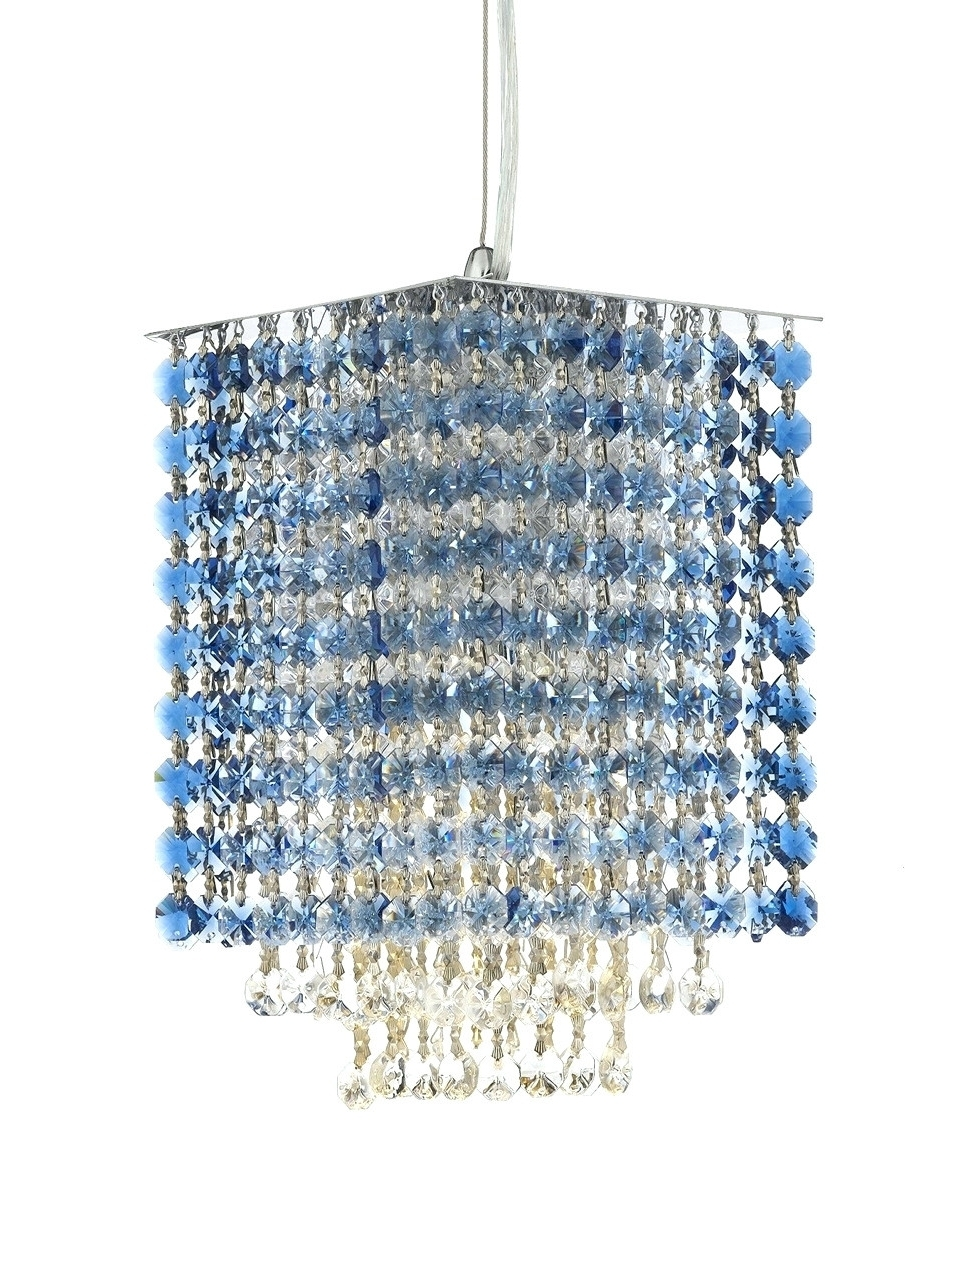 Turquoise Chandelier Awesome Chandeliers Turquoise Chandelier Intended For 2018 Turquoise Chandelier Crystals (View 17 of 20)